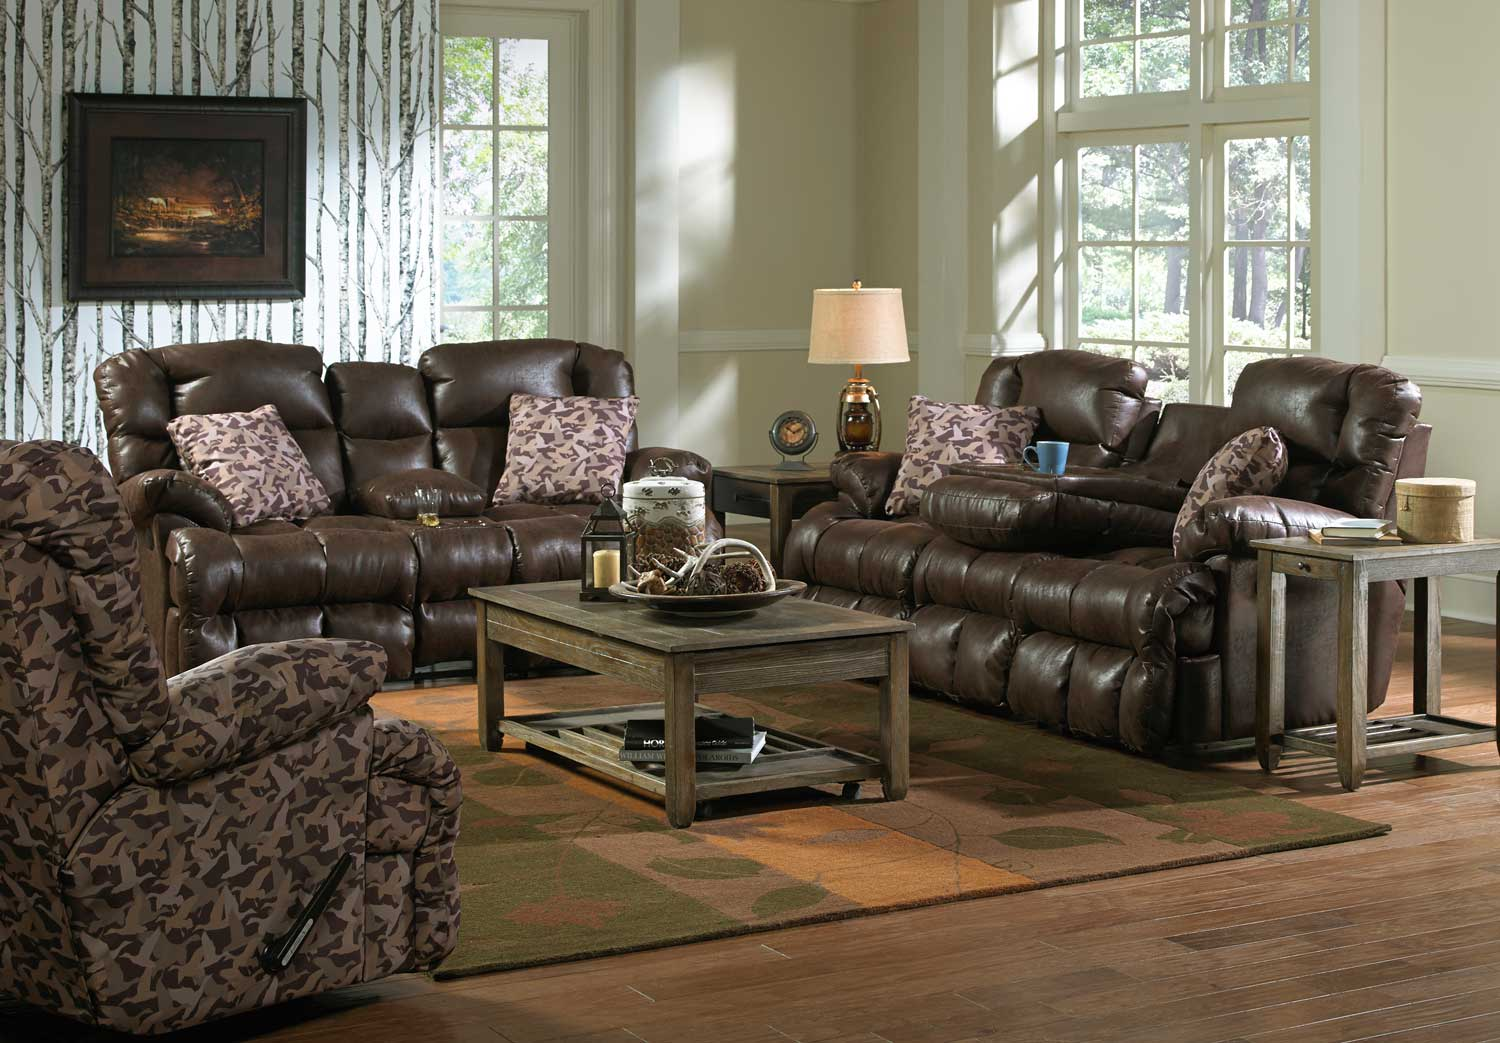 Catnapper duck dynasty cedar creek lay flat reclining sofa for Ashley furniture room planner